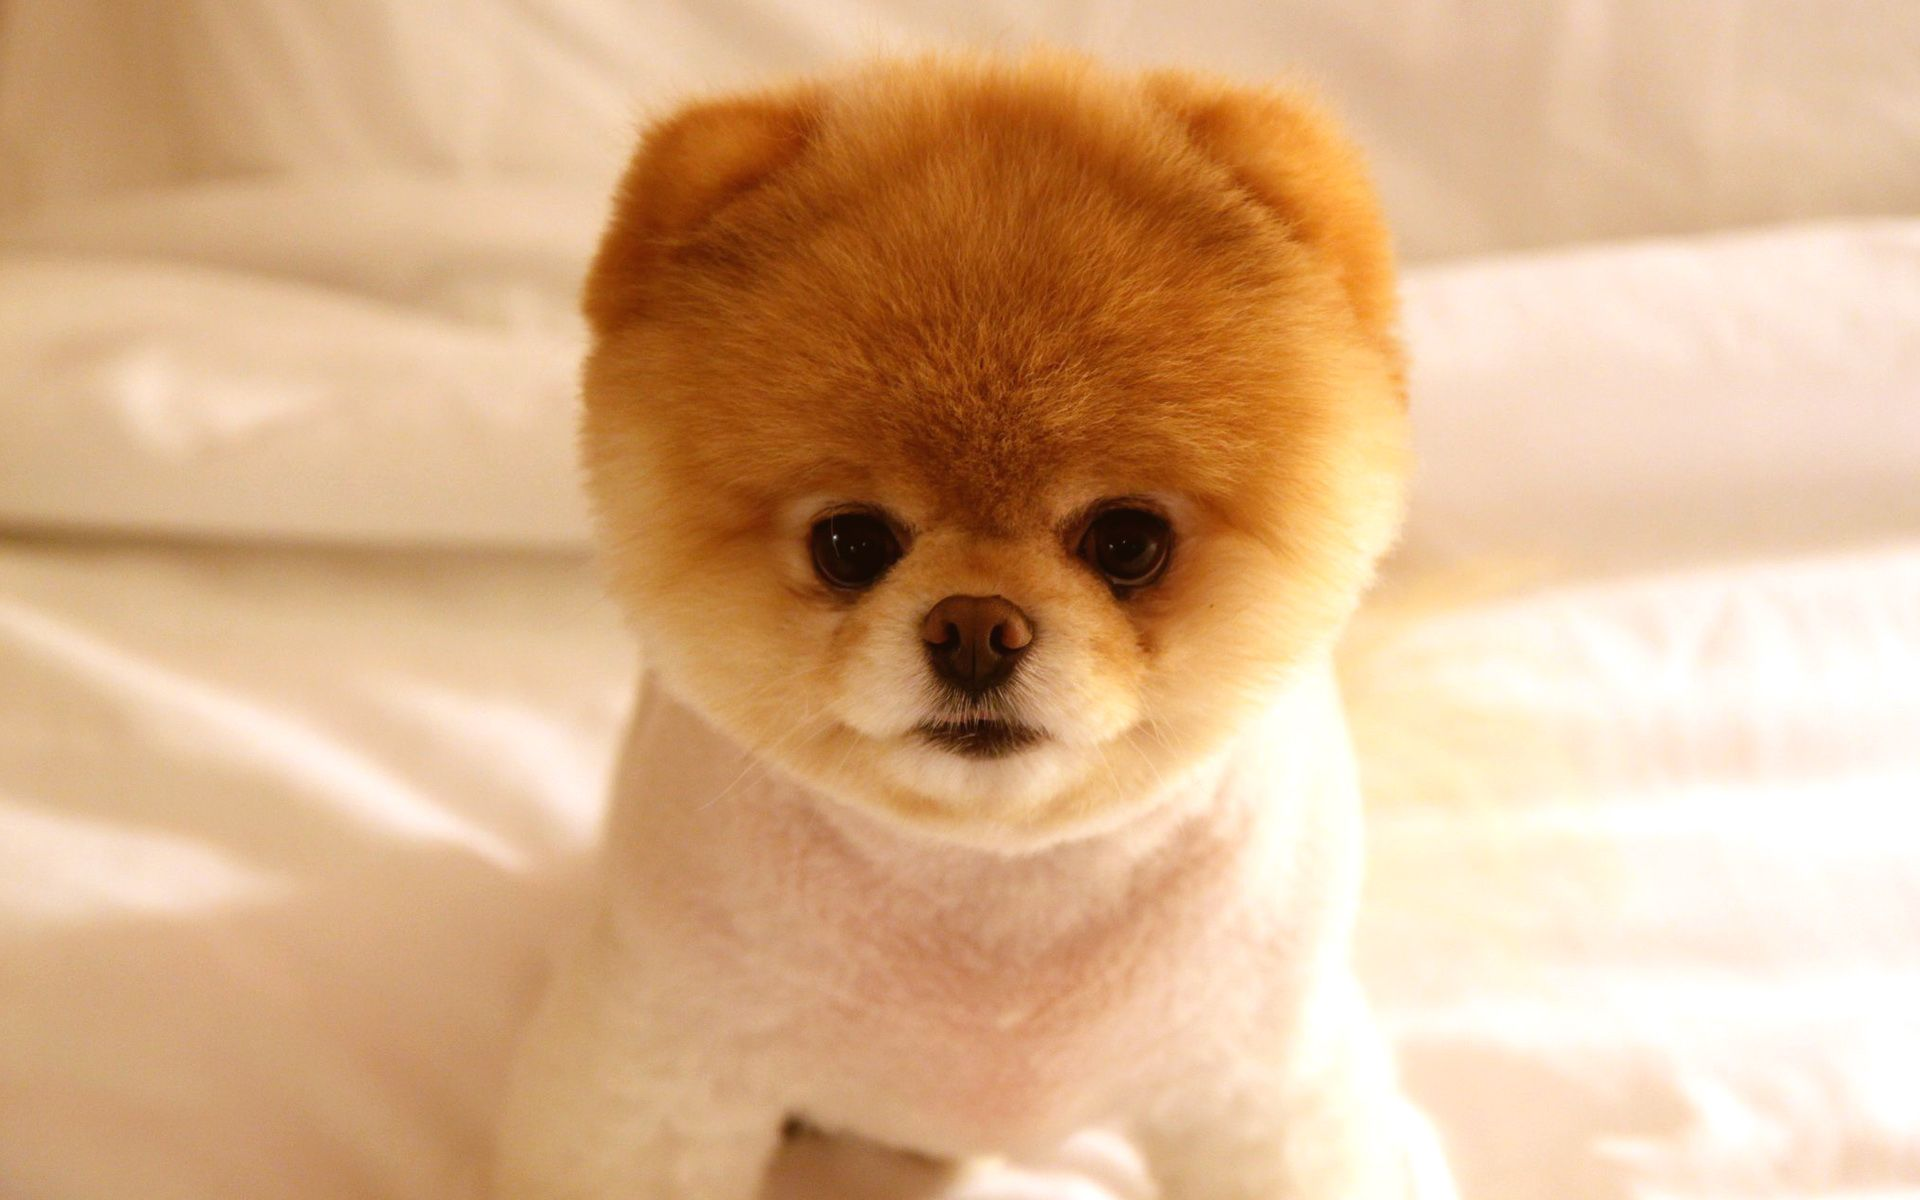 Is This Picture Fake Cuz This Dog Is Too Cute To Be True Https Ift Tt 39fp3dq Pomeranian Puppy Cute Baby Animals Cute Dogs